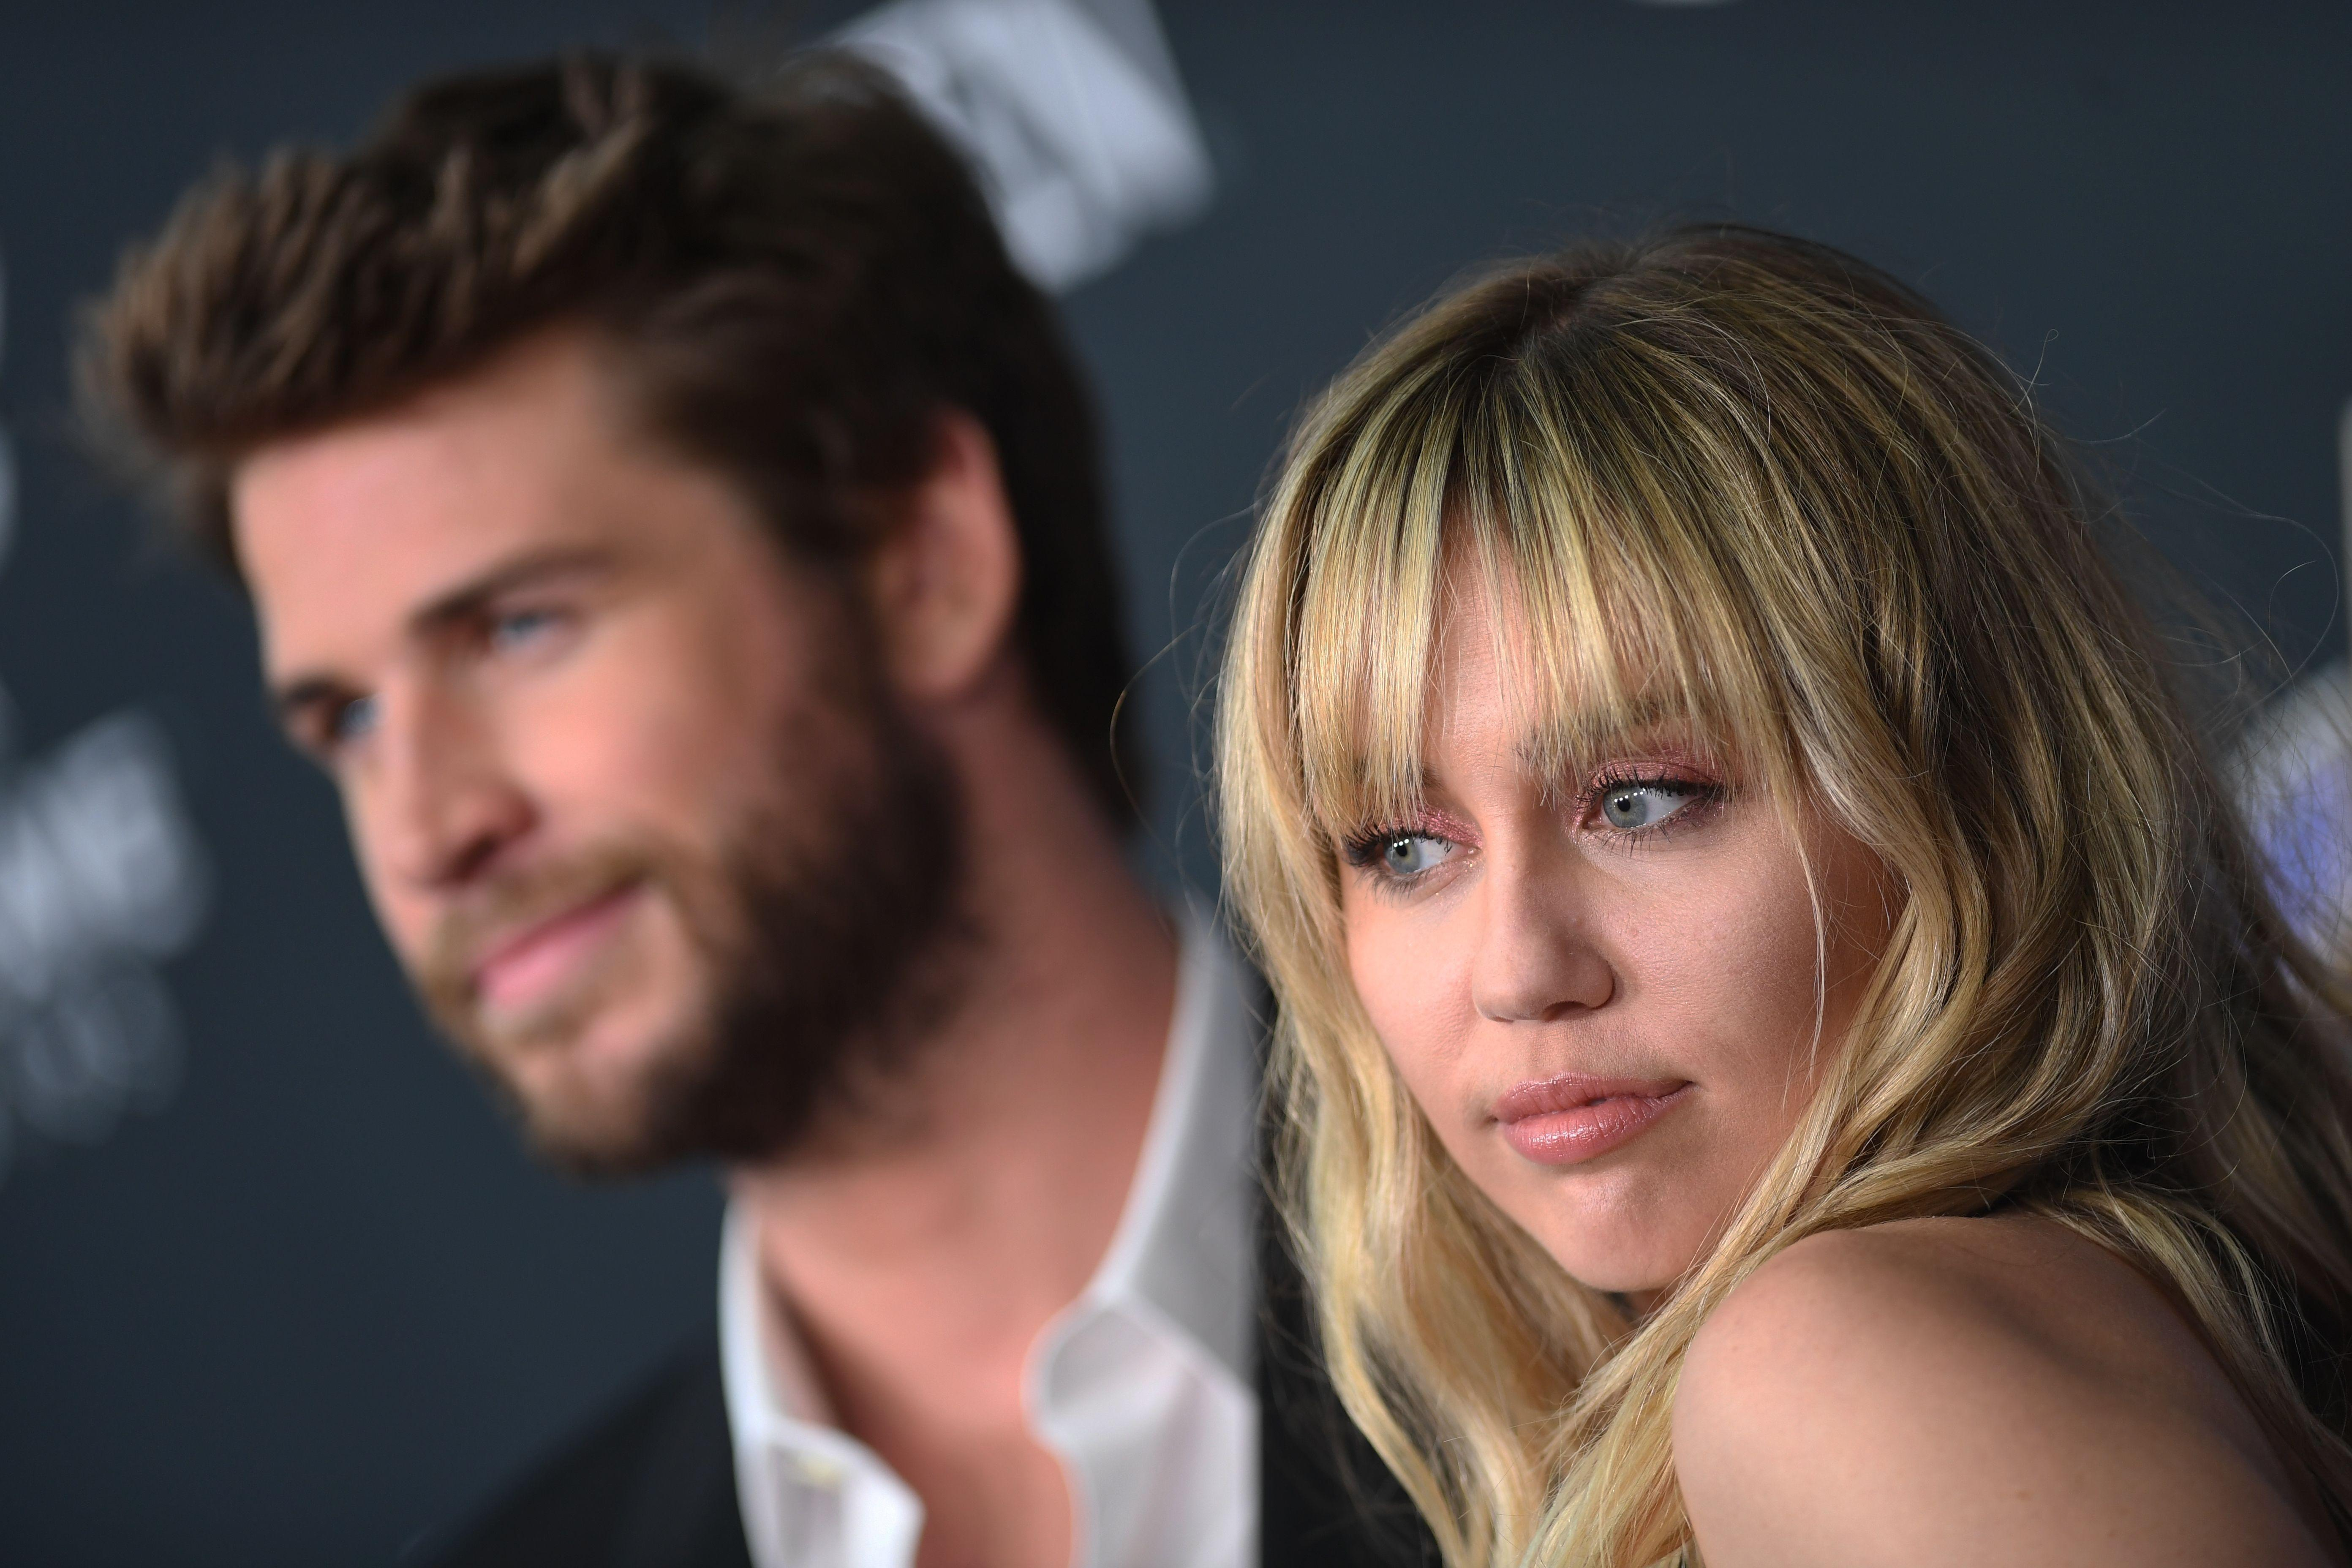 Miley Cyrus denies being unfaithful to Liam Hemsworth: 'I refuse to admit that my marriage ended because of cheating'